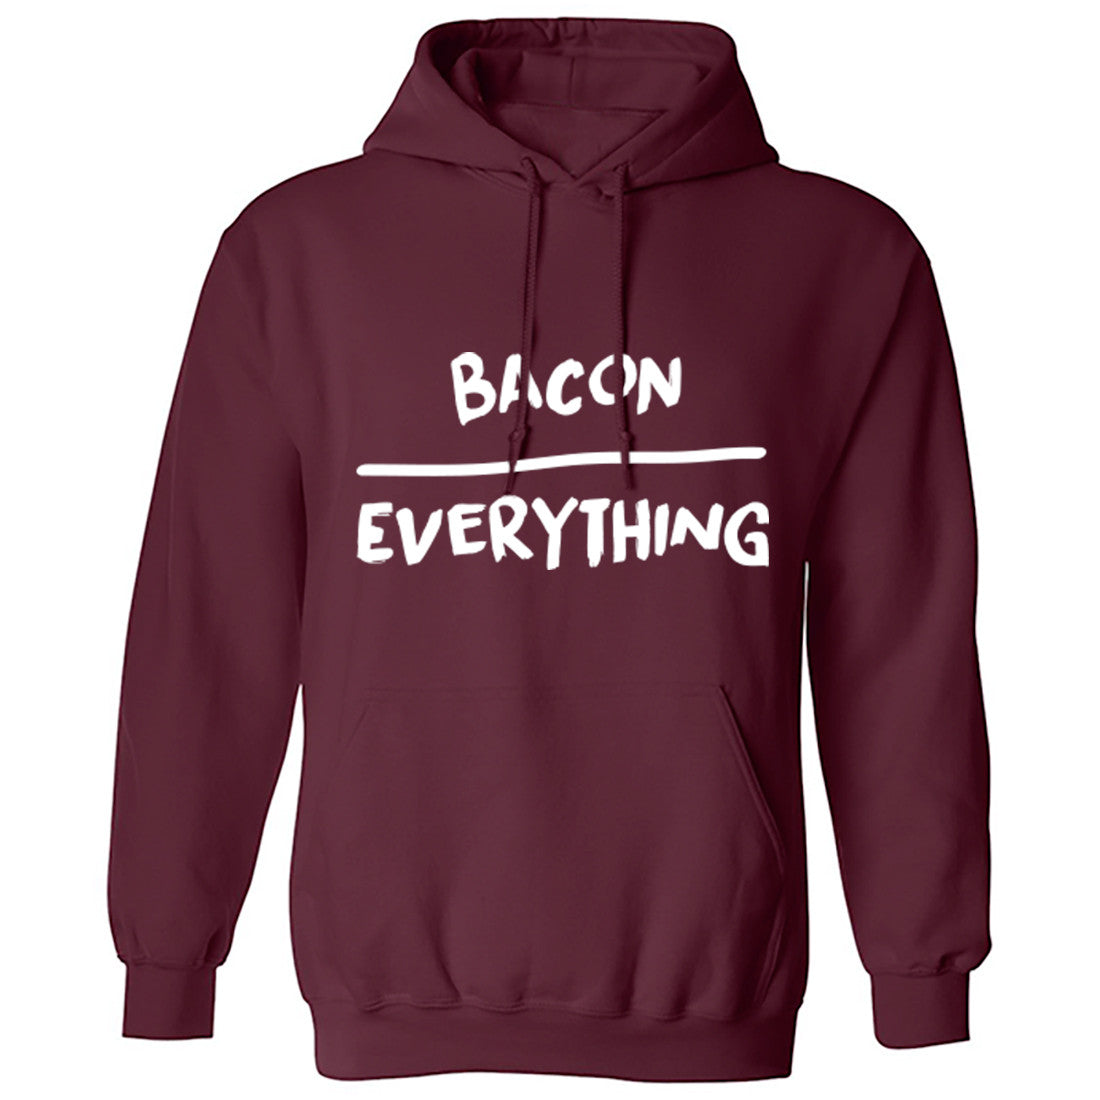 Bacon Over Everything Hoodie K0125 - Illustrated Identity Ltd.